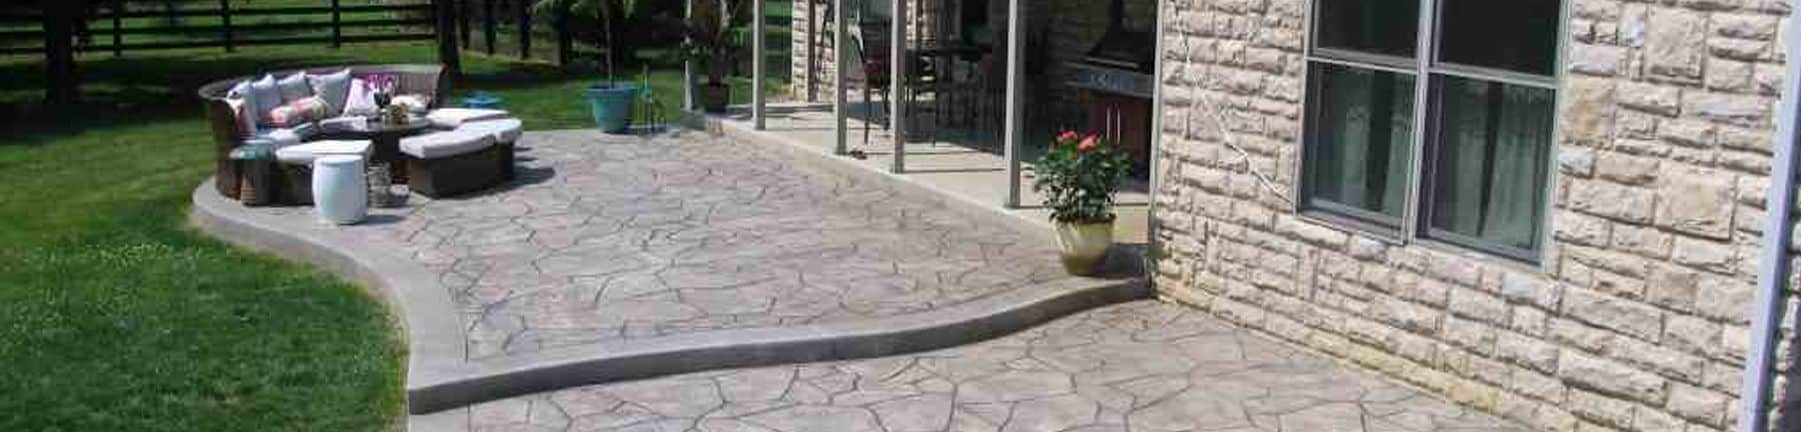 Residential Paving Contractor Fairport, NY